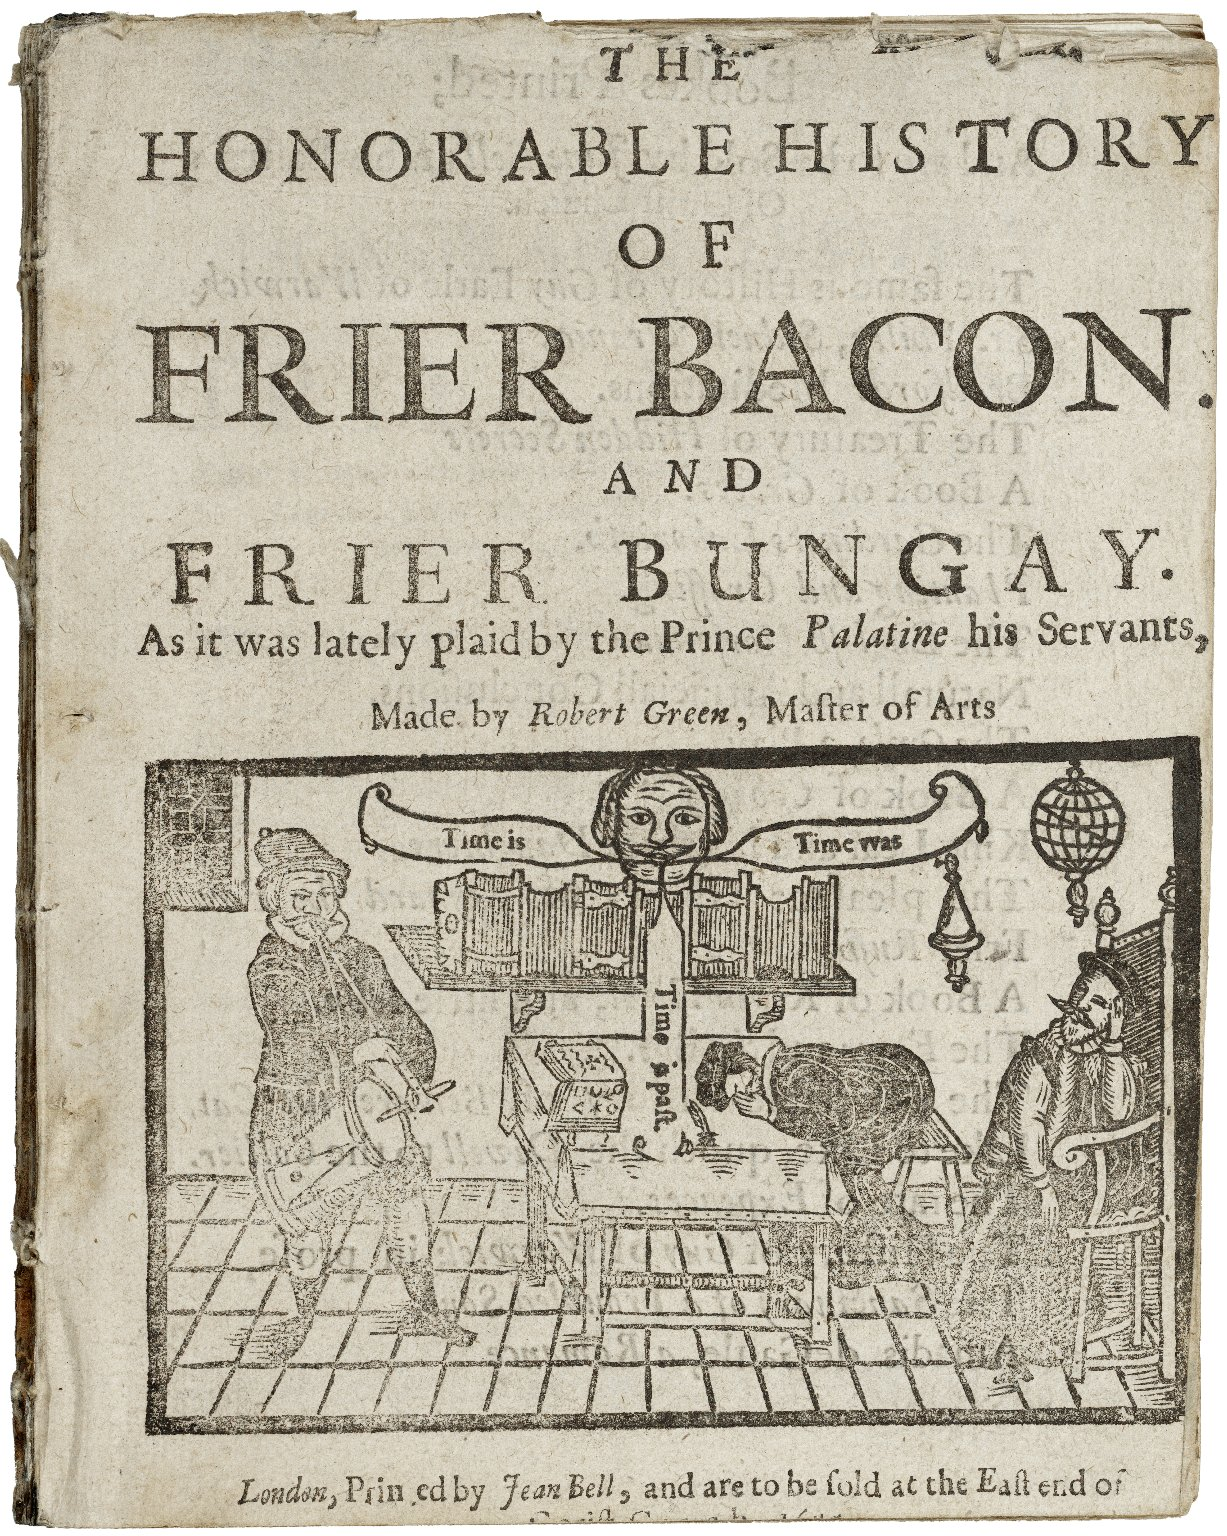 [Friar Bacon and Friar Bungay] The honorable history of Frier Bacon and Frier Bungay…